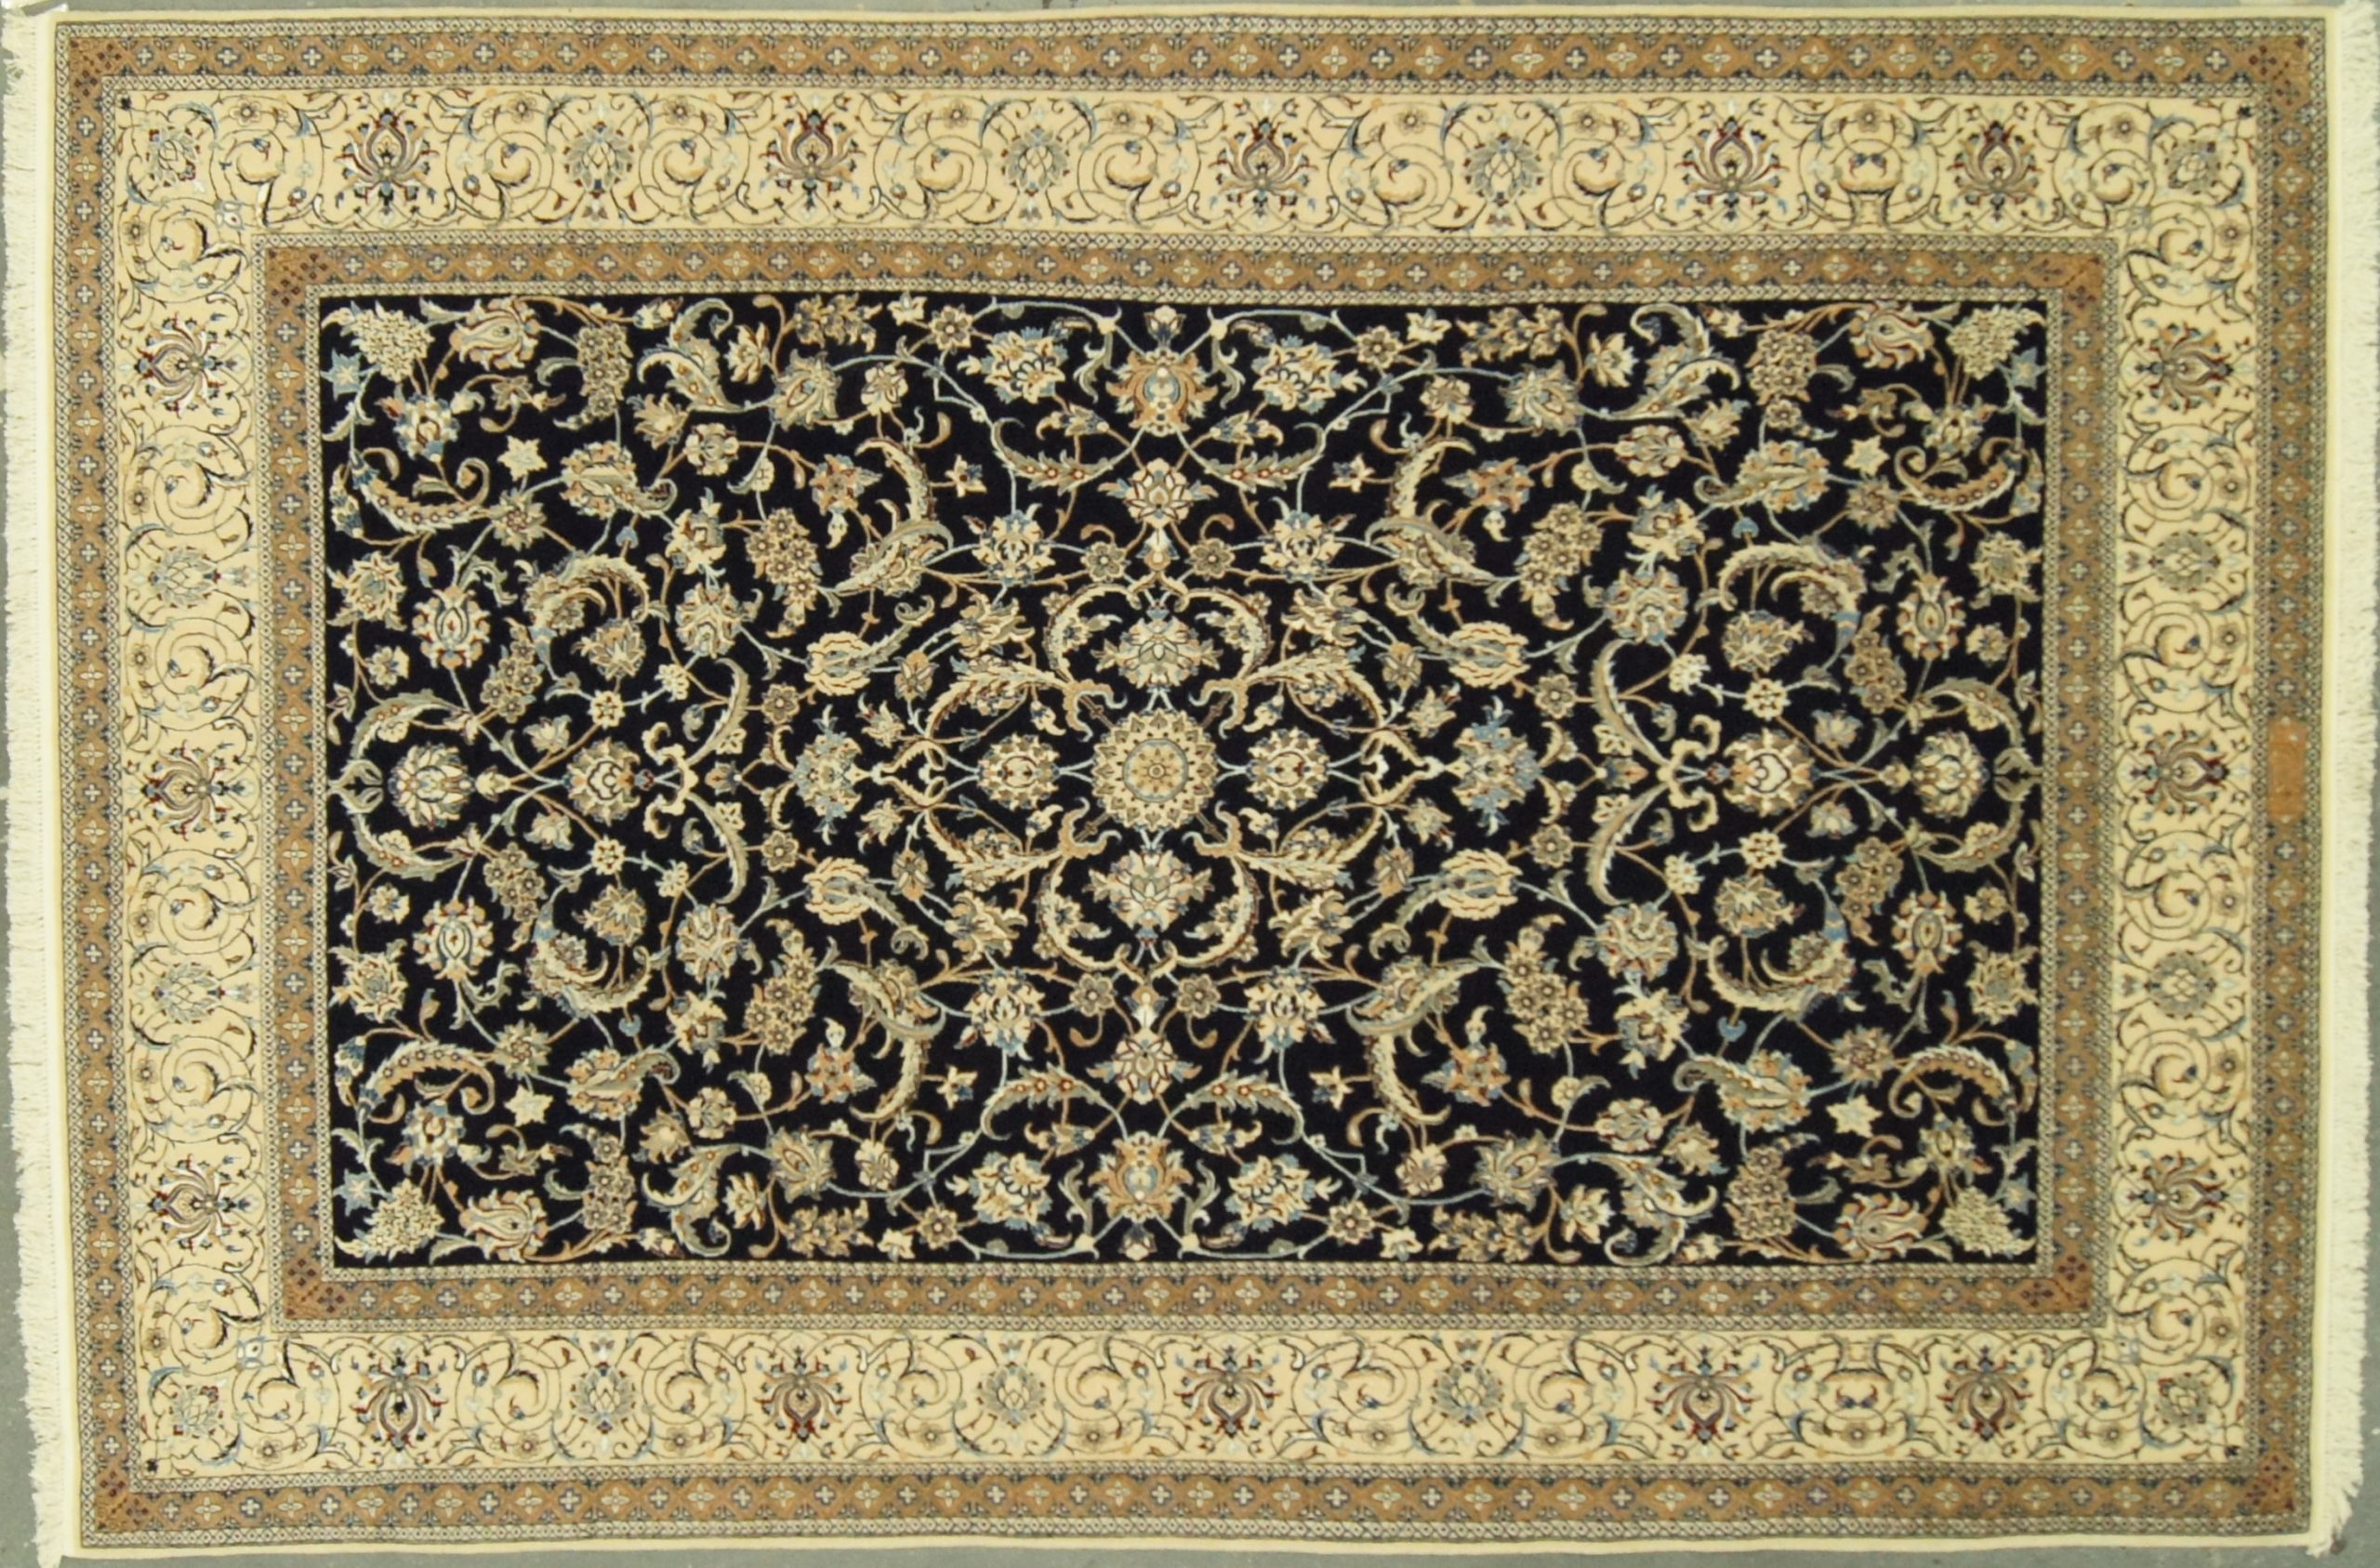 6x9 Iranian Nain Superfine Wool & Silk - Rug